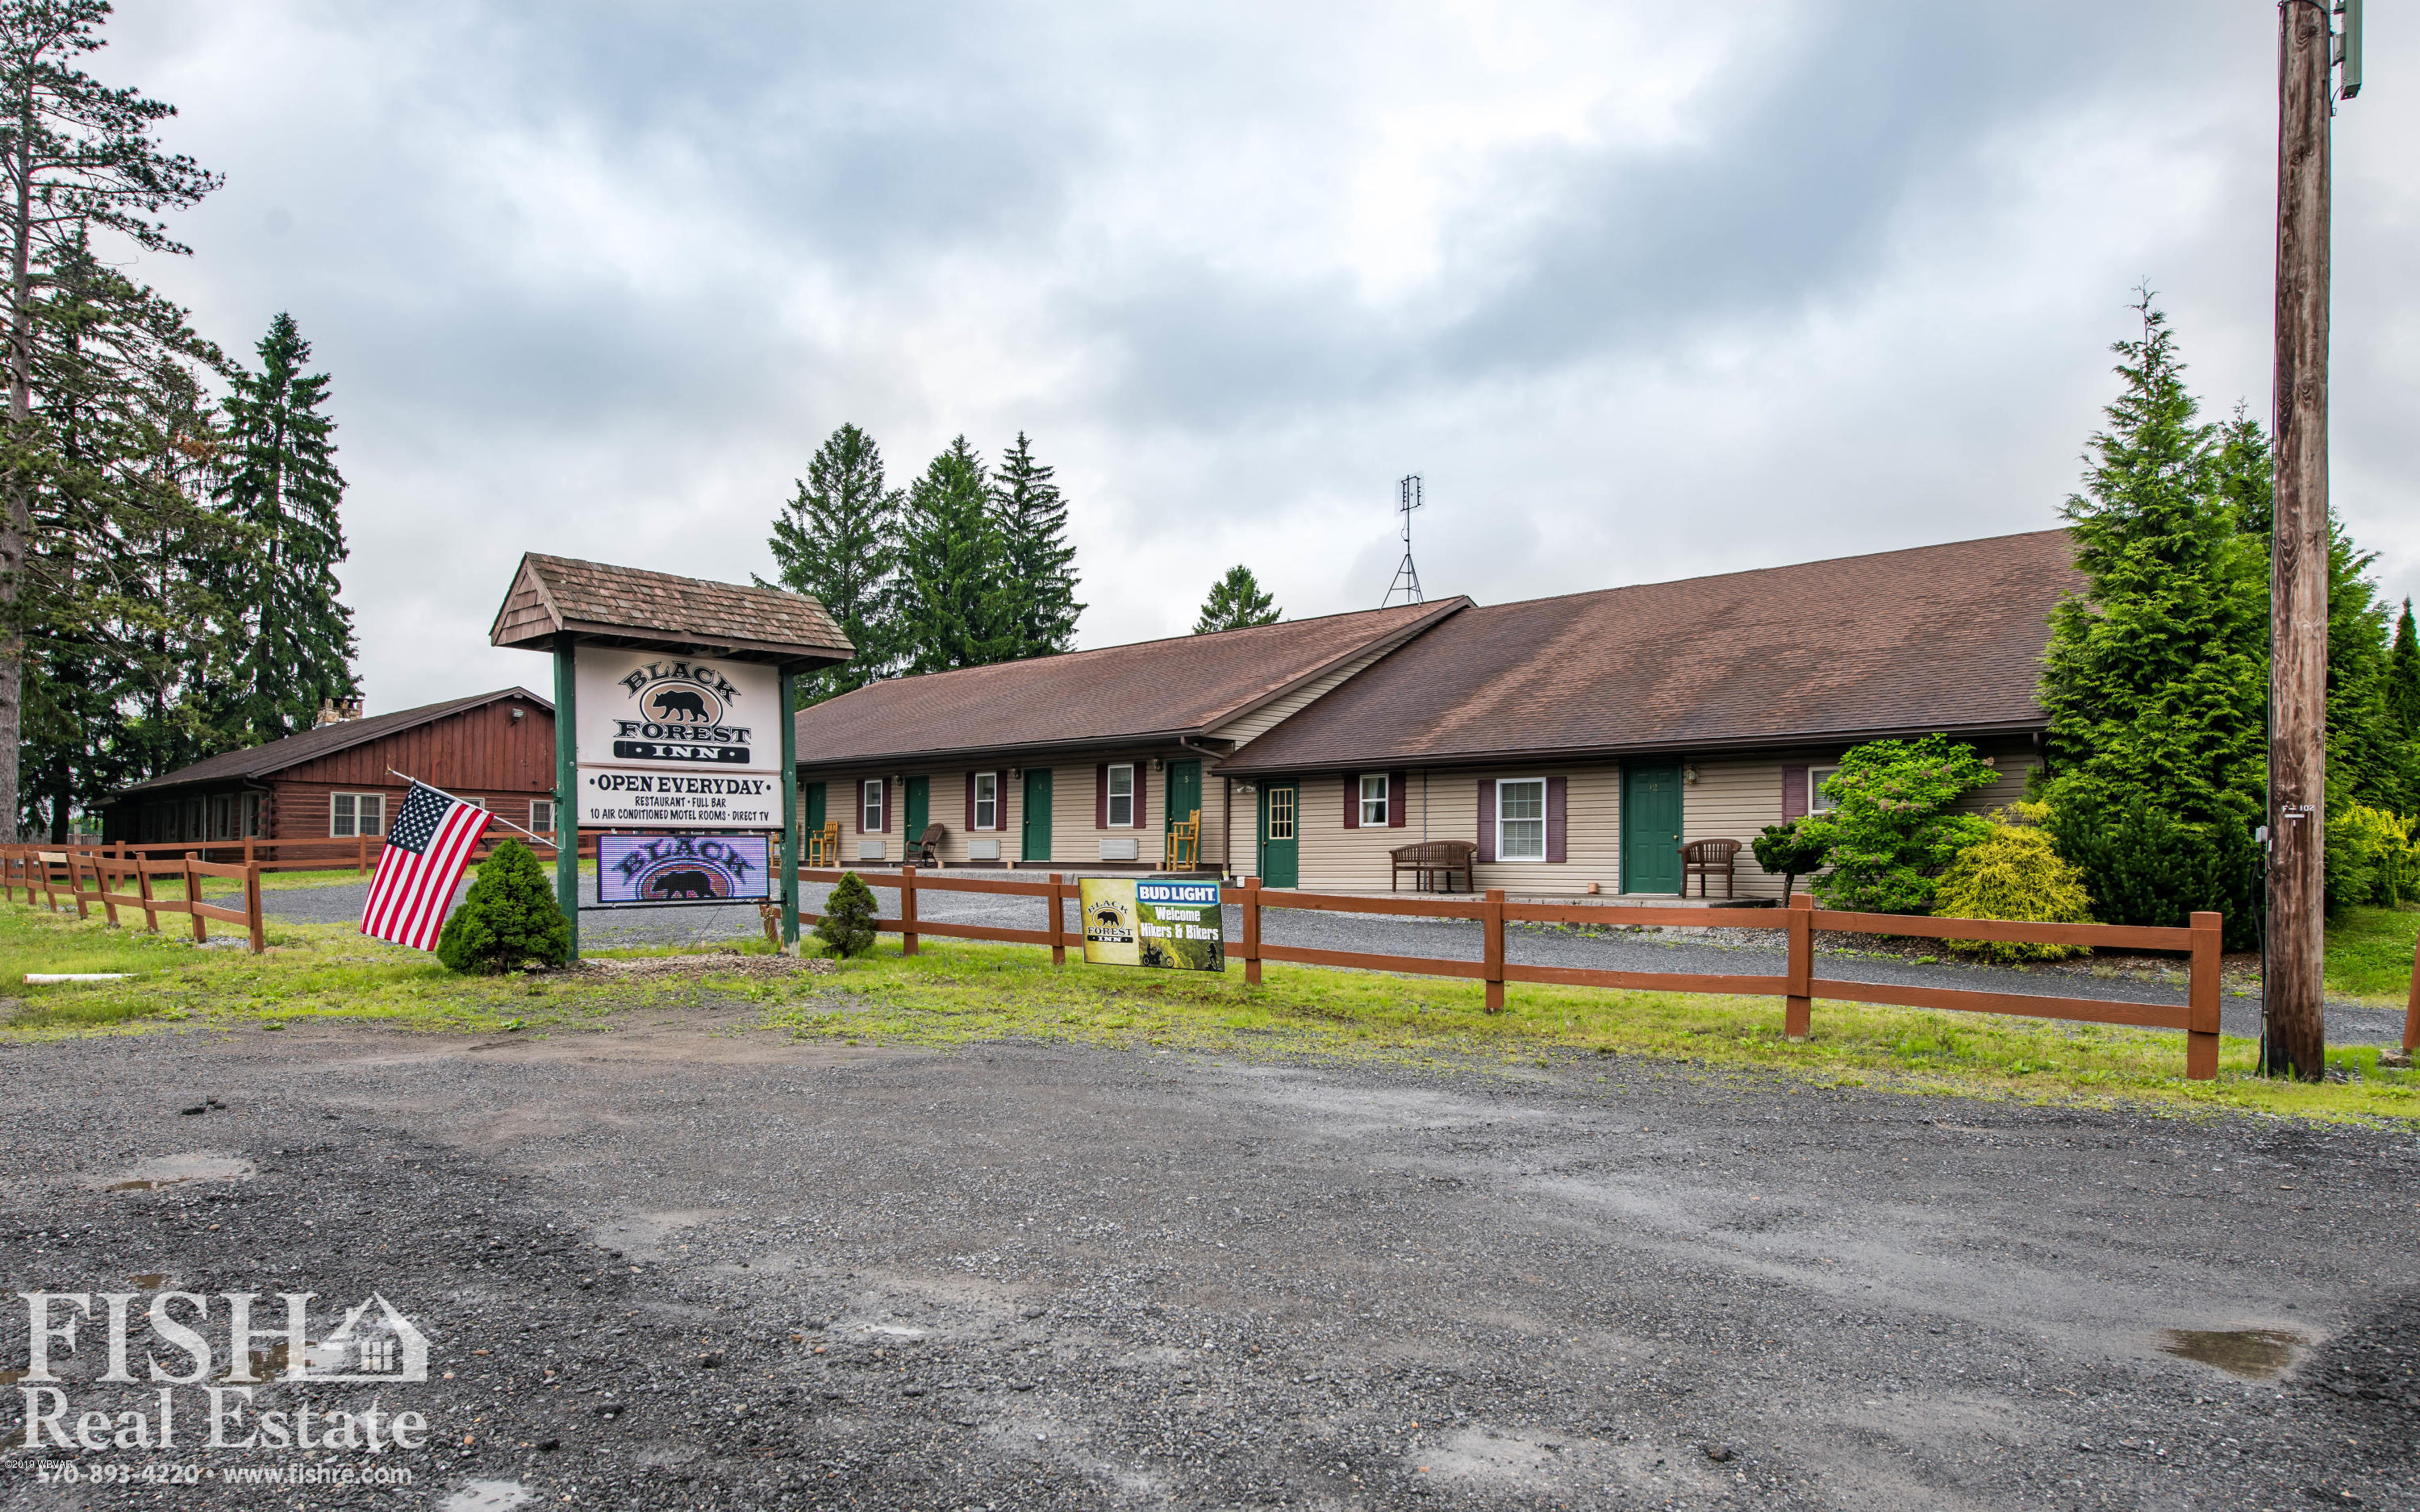 32634 PA-44 HIGHWAY, Lock Haven, PA 17745, ,4 BathroomsBathrooms,Commercial sales,For sale,PA-44,WB-91536